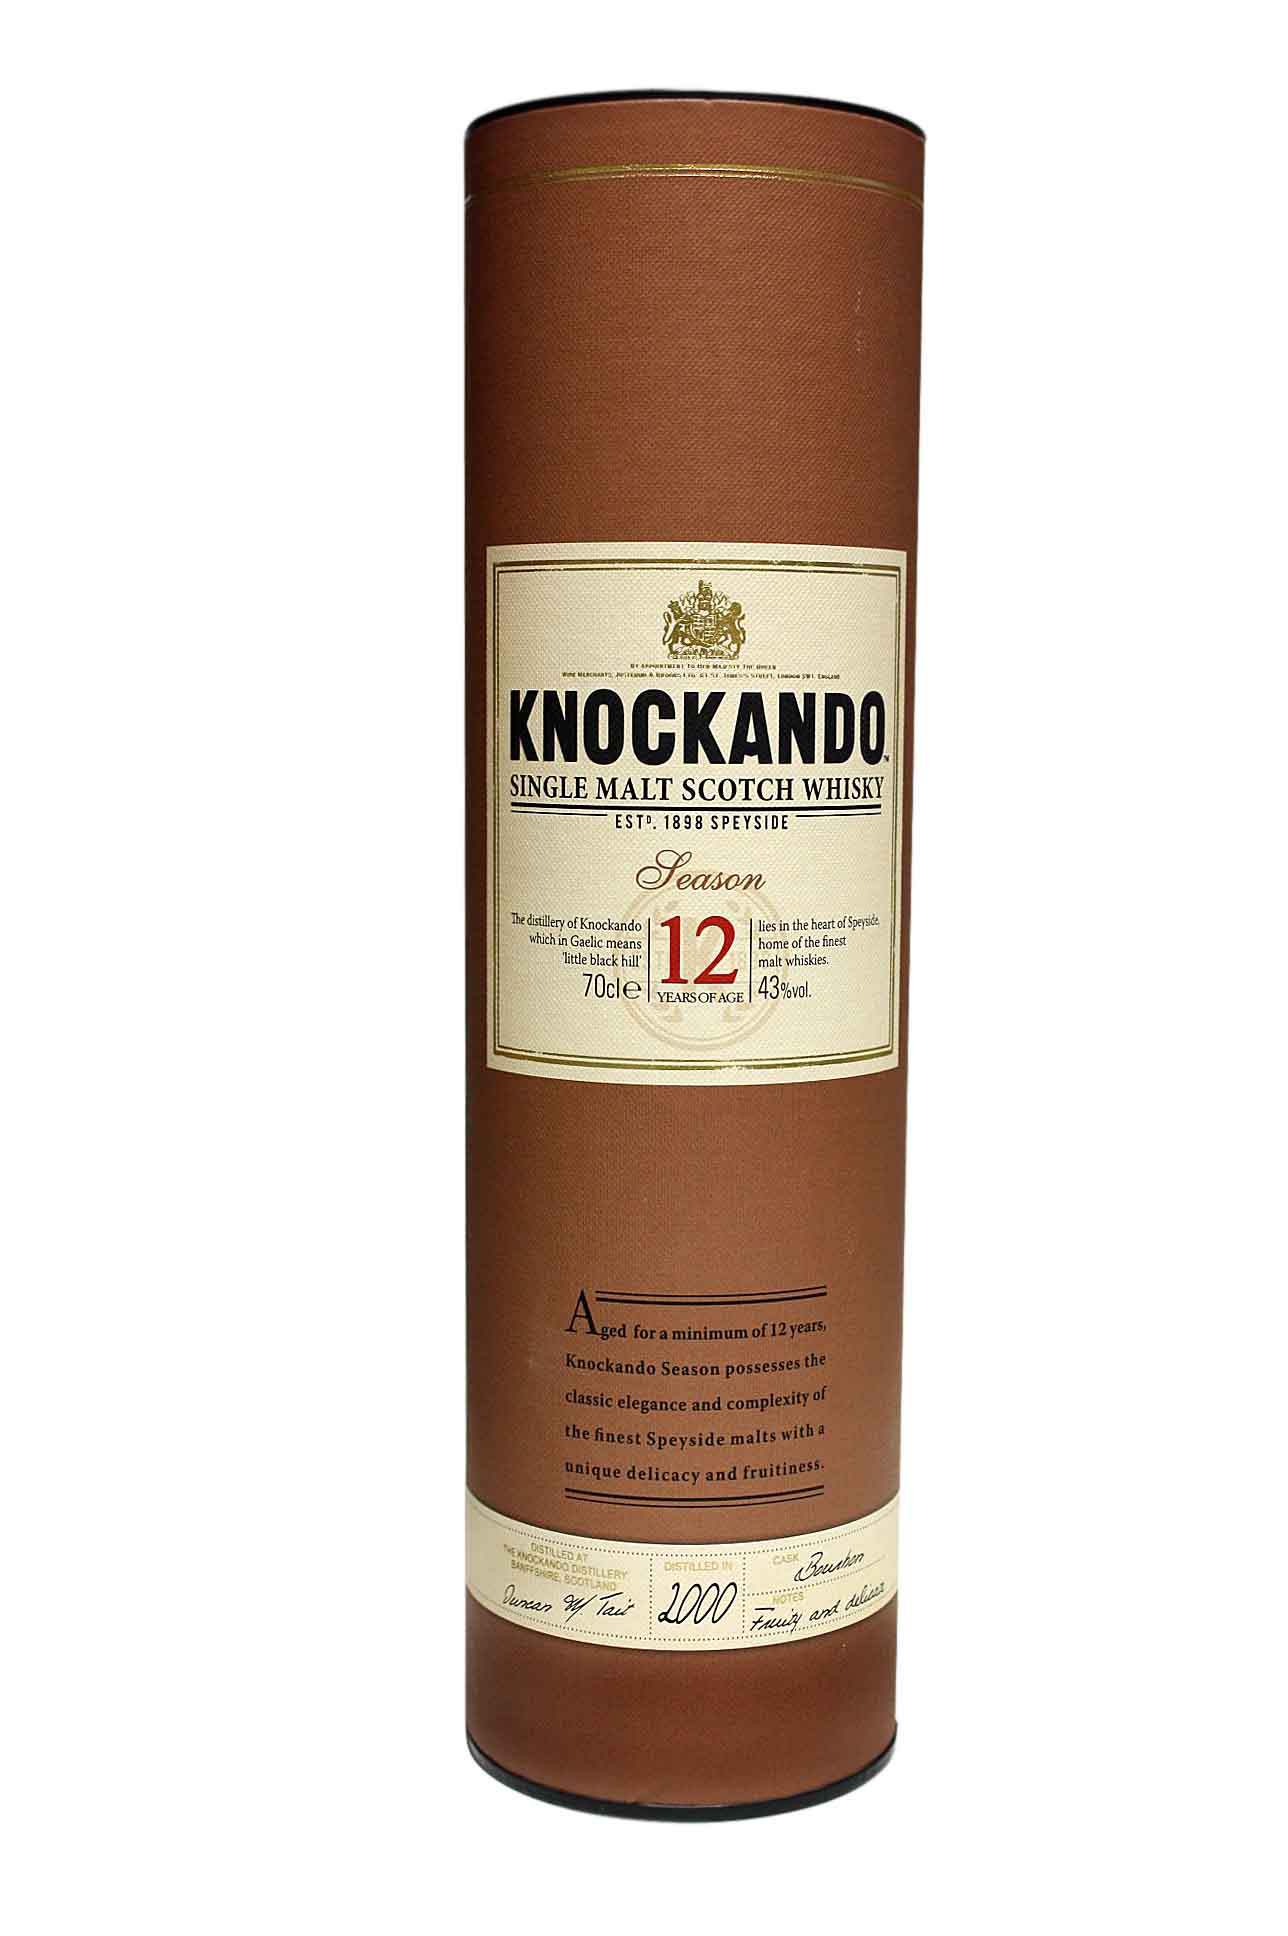 Whisky knockando 12 years